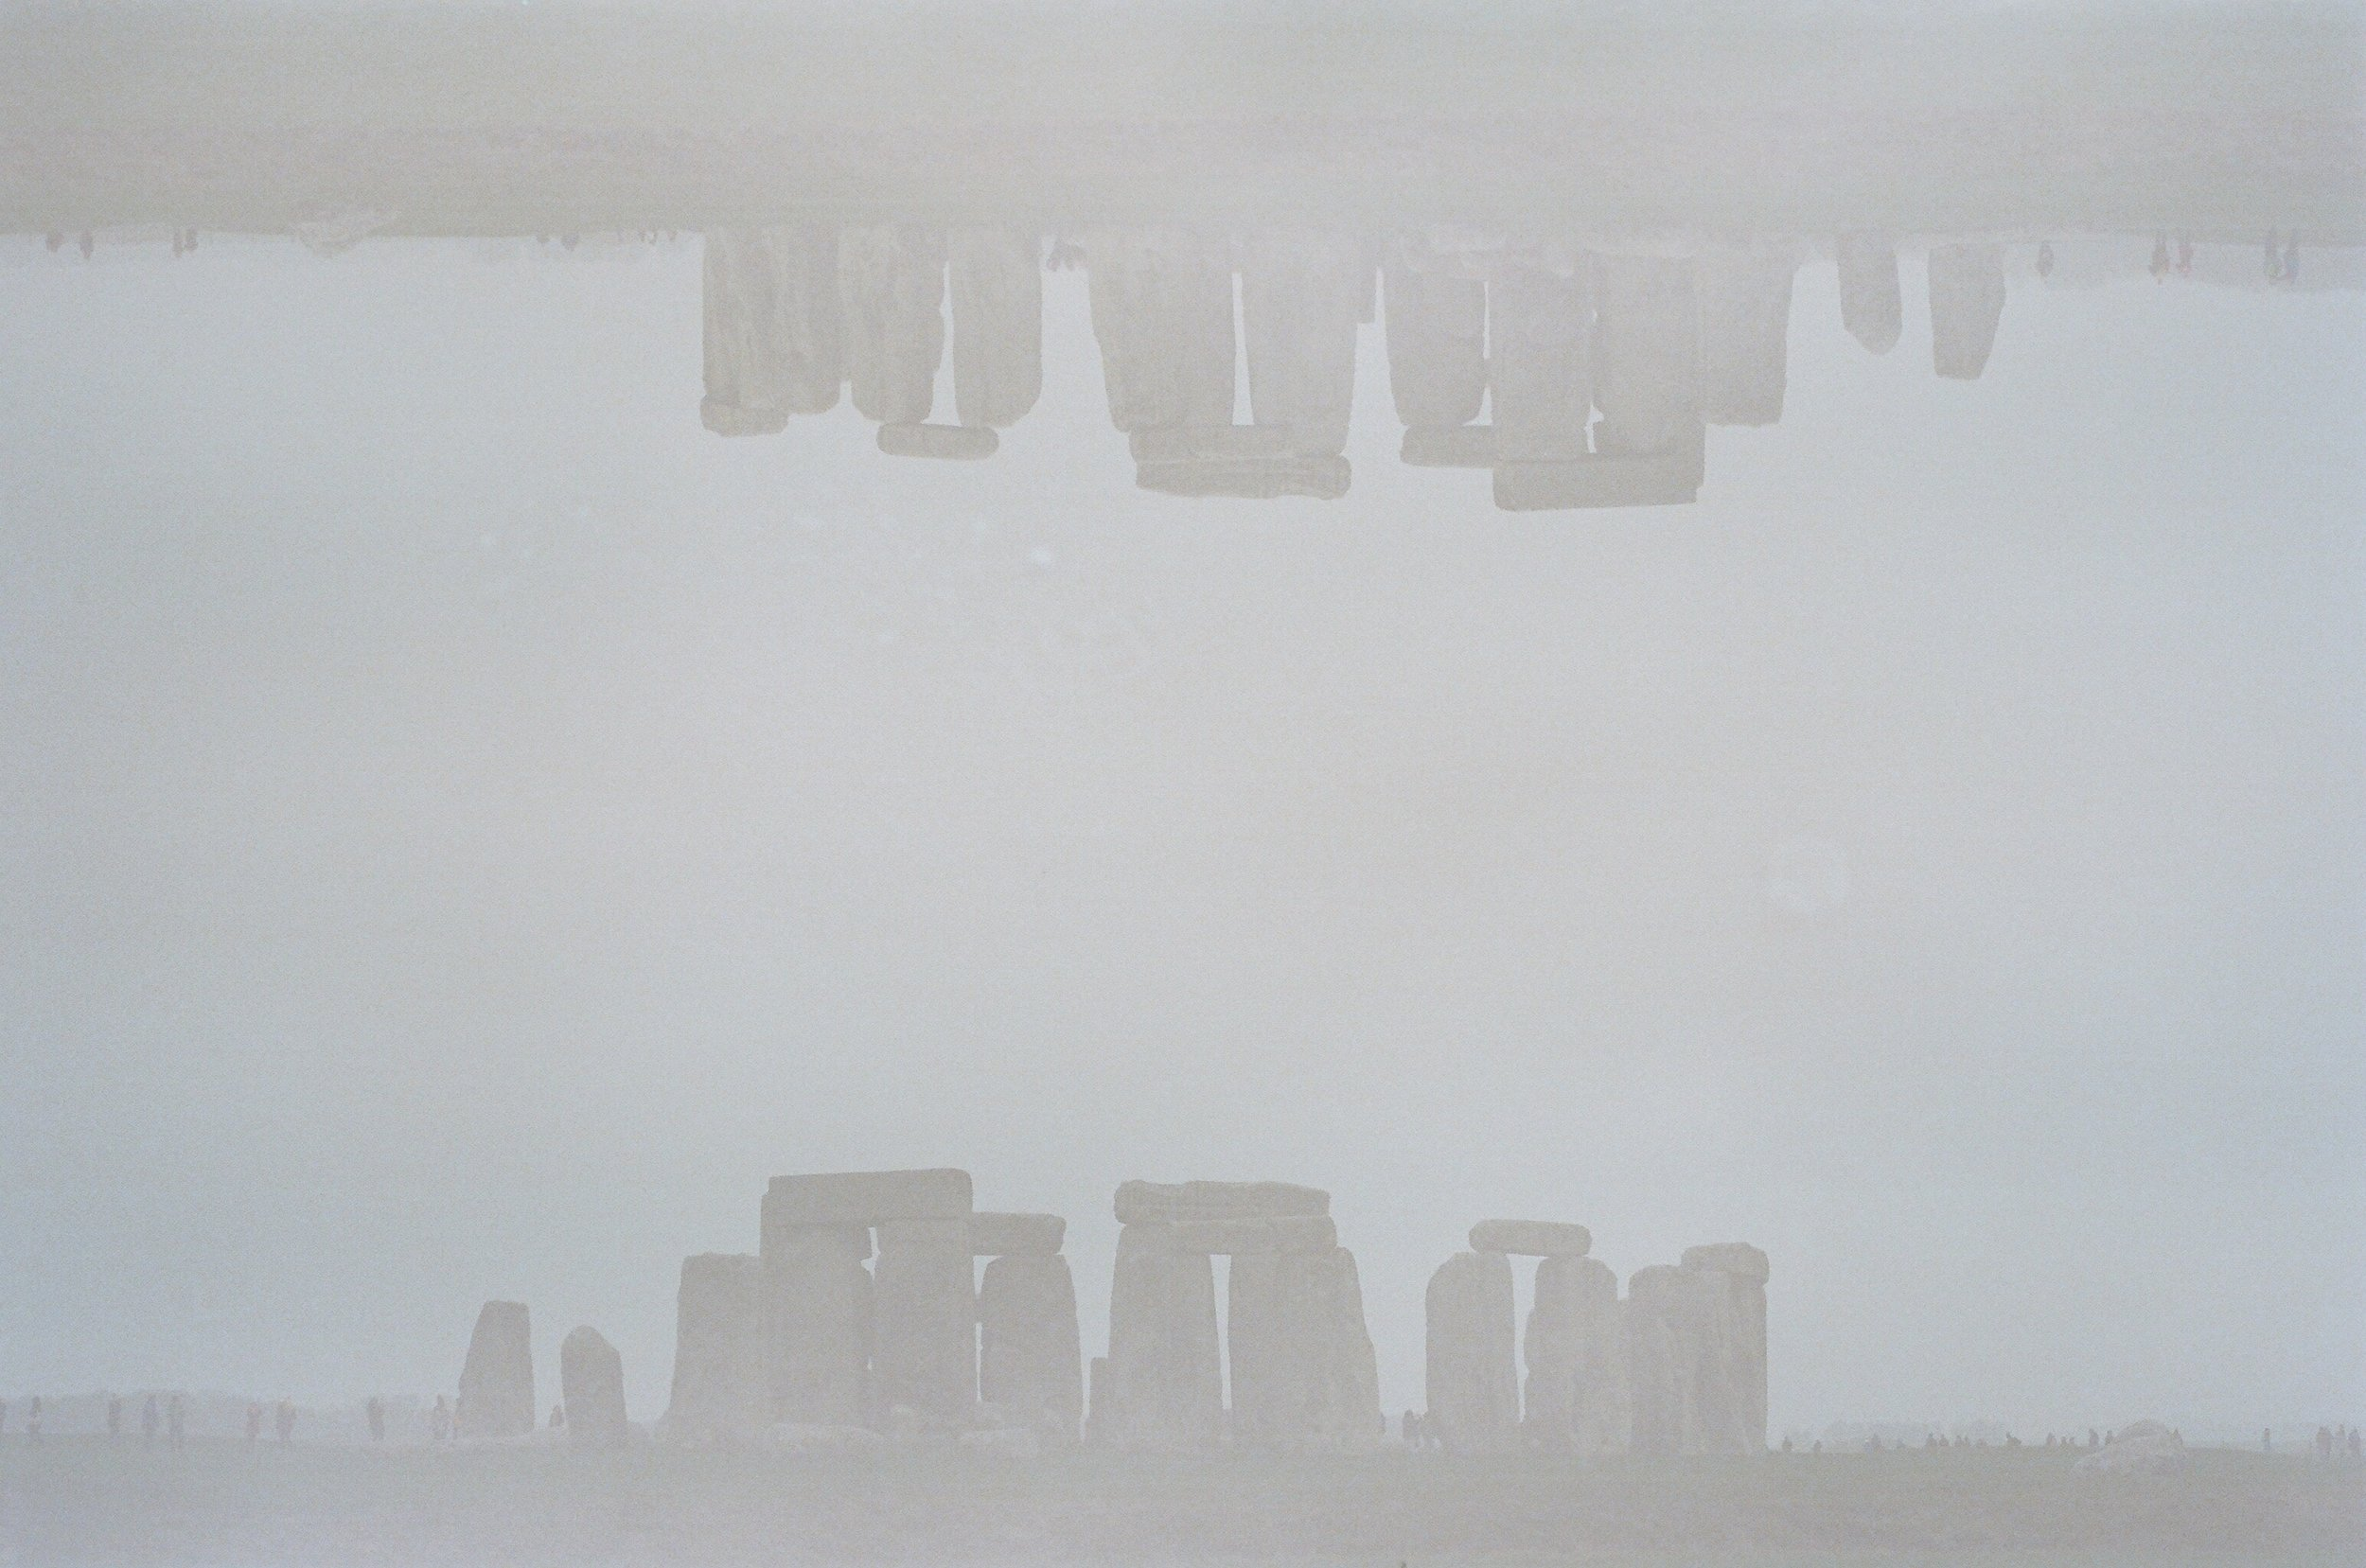 91 Stonehenge DOUBLE EXPOSURE.JPG